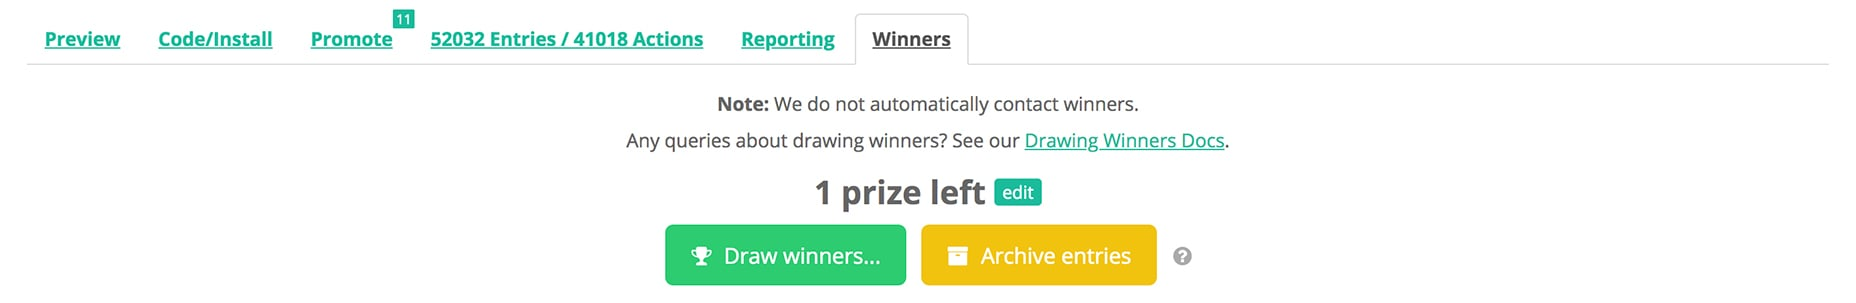 gleam-drawing-winners-1